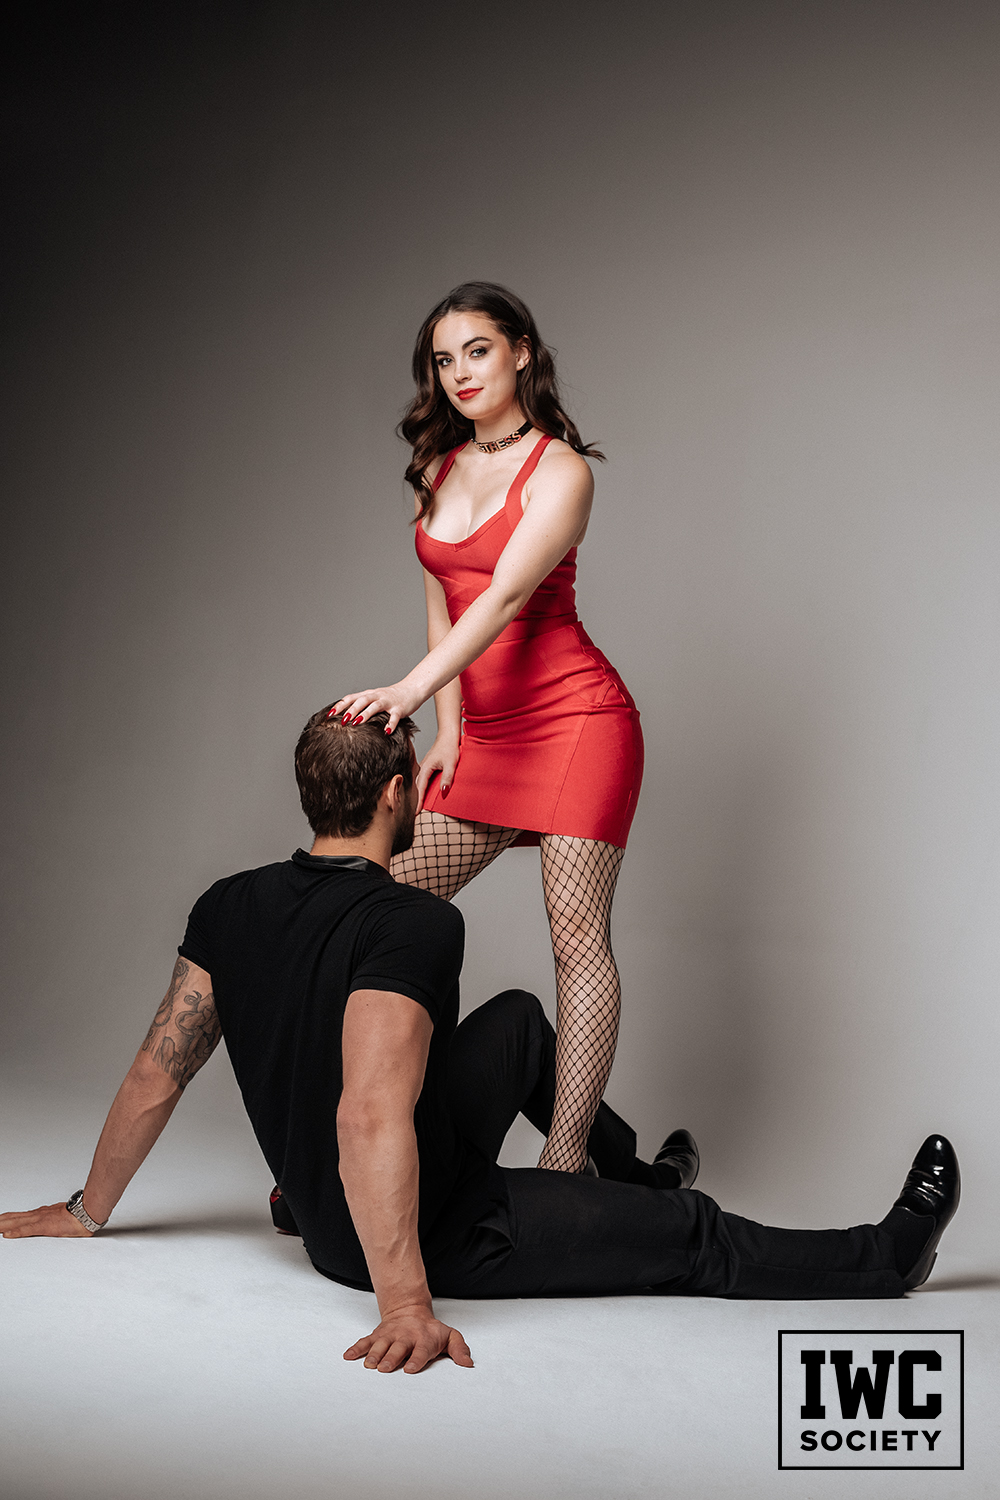 Cute Princess Camryn in red dress and stockings pushing man's head on floor to worship her legs